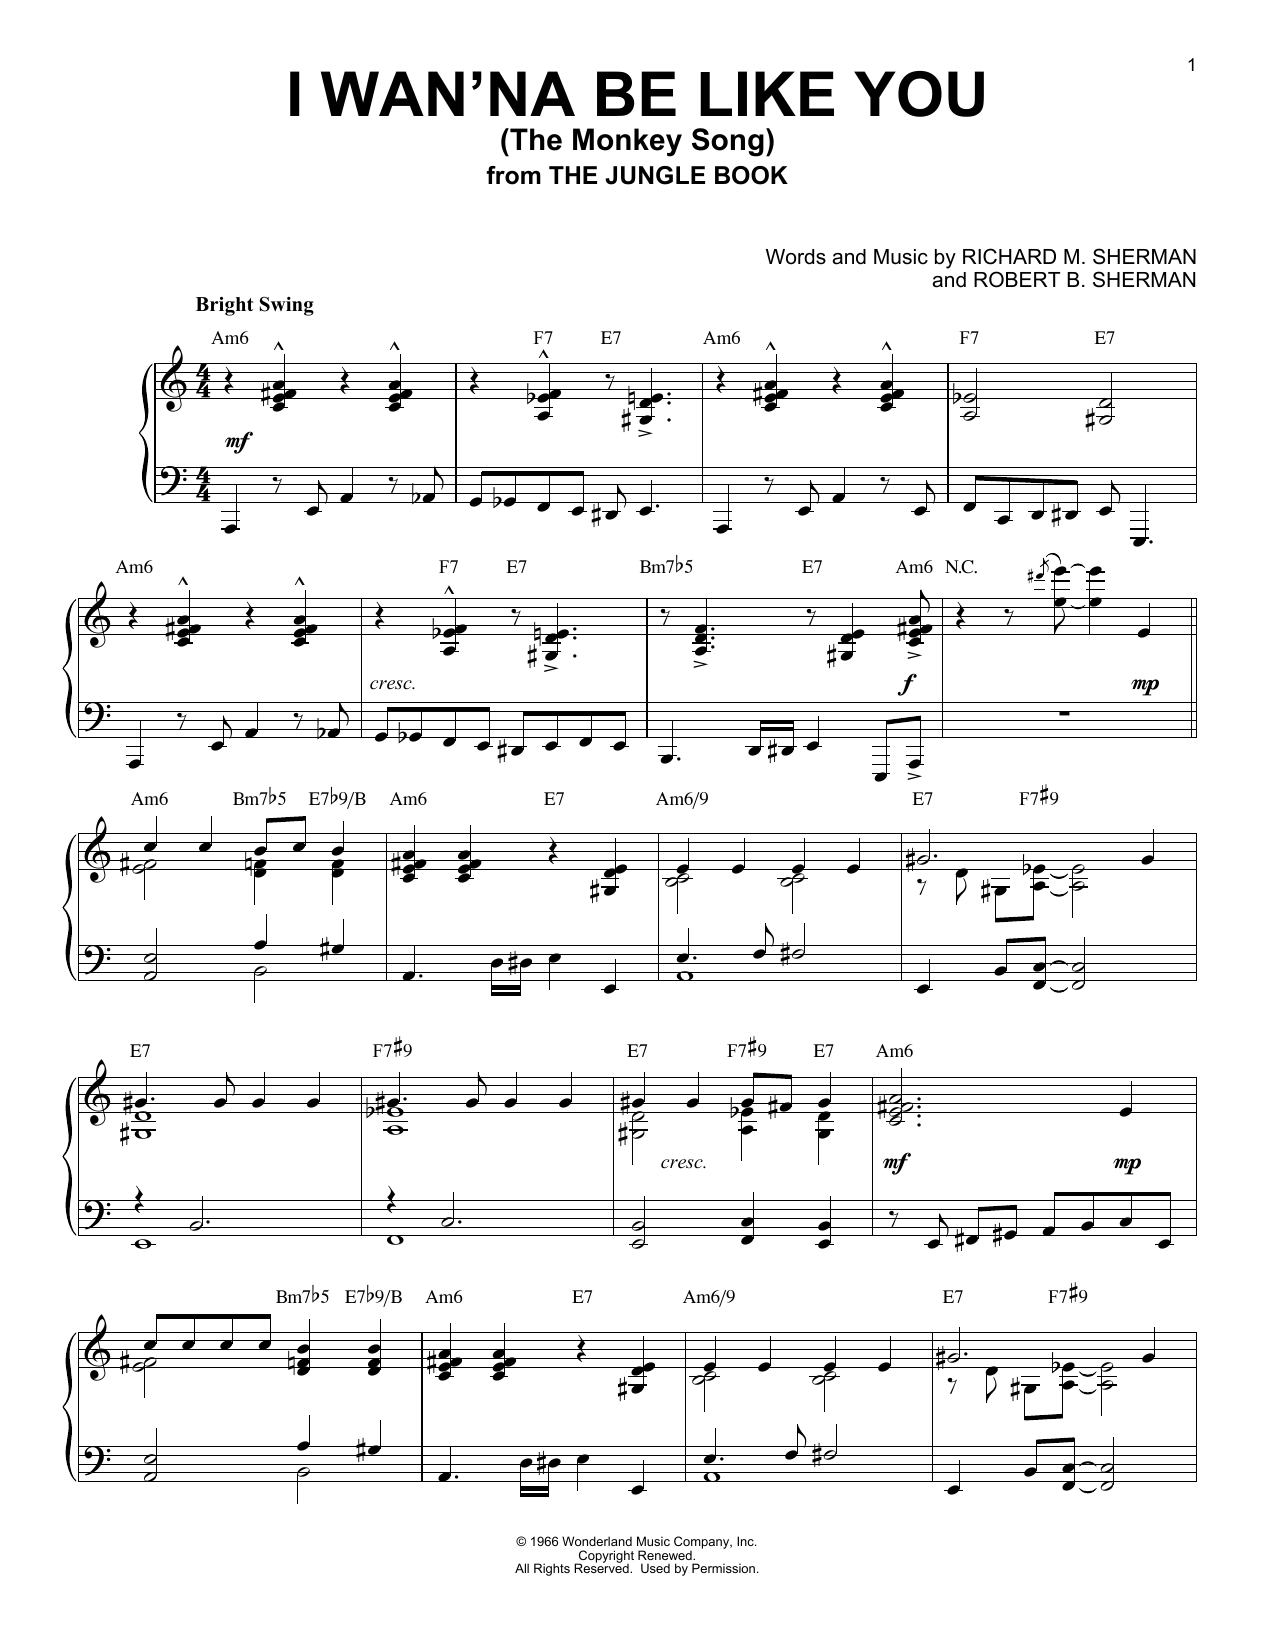 Robert B. Sherman I Wan'na Be Like You (The Monkey Song) [Jazz version] (from The Jungle Book) sheet music notes and chords. Download Printable PDF.